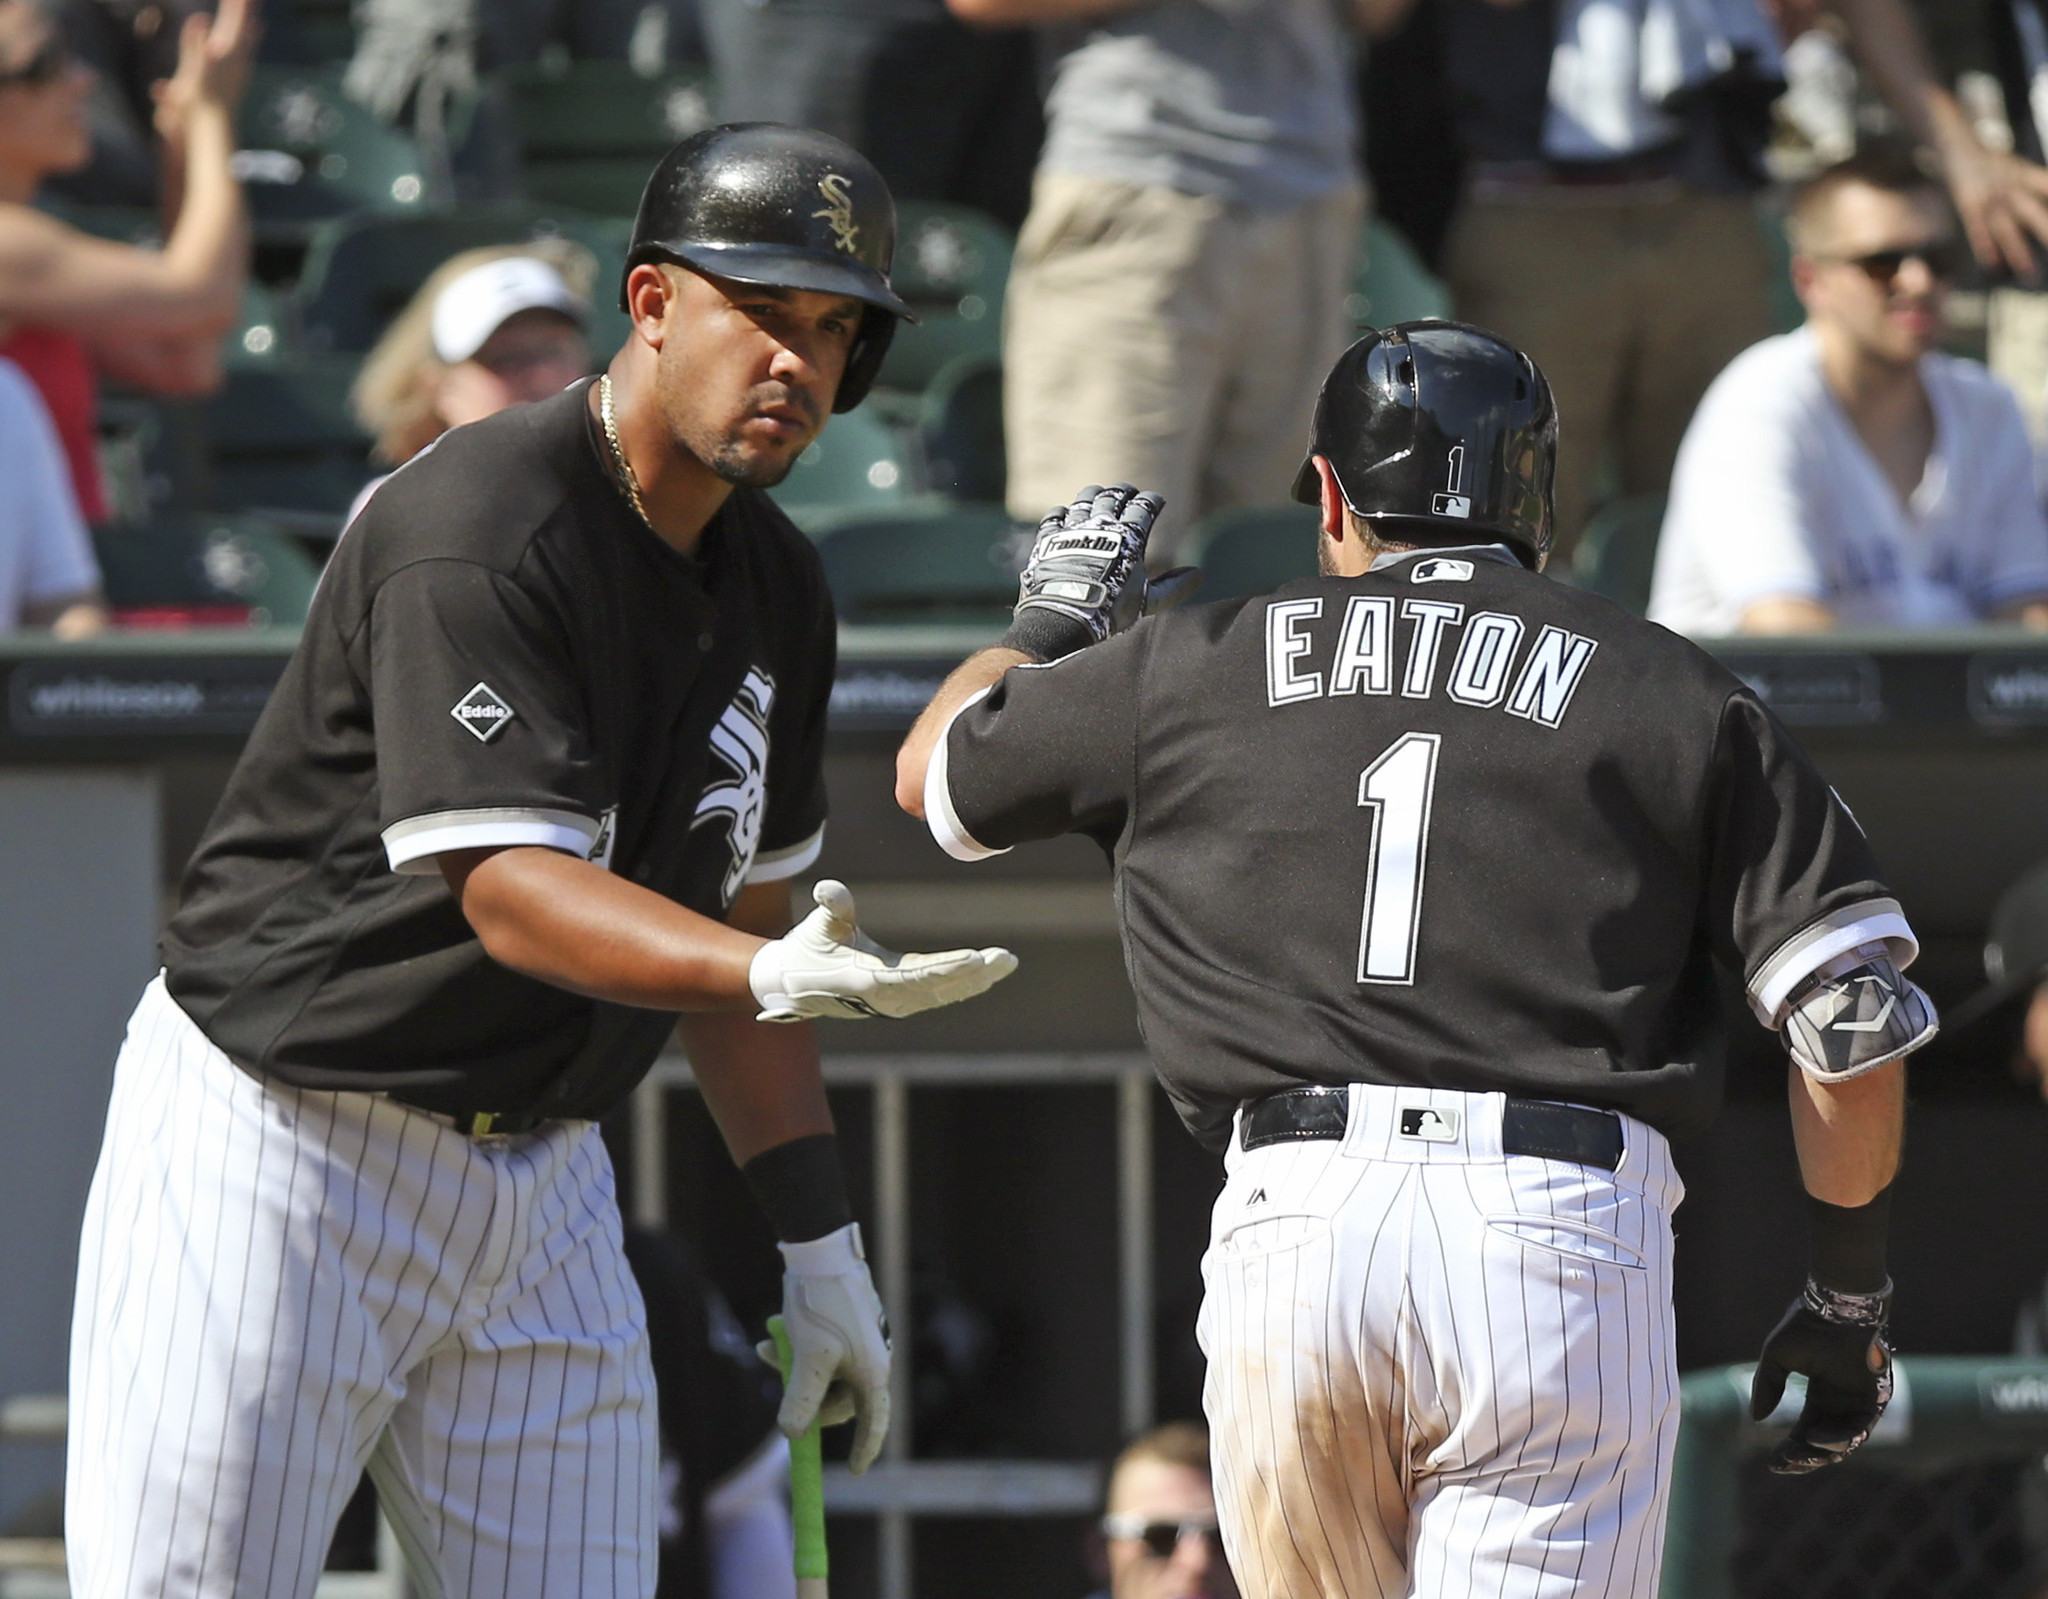 Ct-slugging-white-sox-lose-to-blue-jays-report-spt-0626-20160625